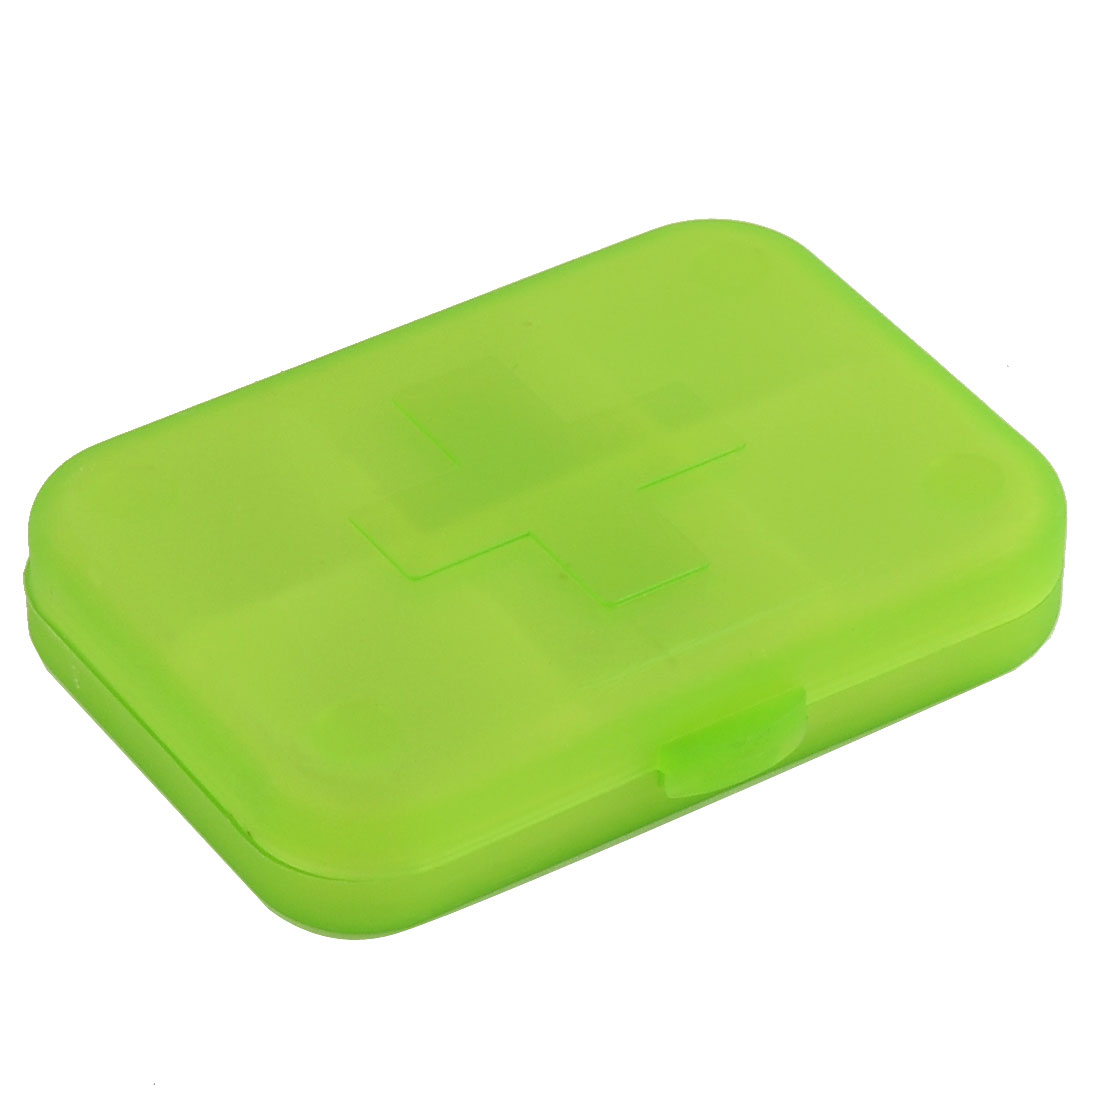 Plastic 6 Compartments Cross Mark Medicine Pill Container Box Case Clear Green